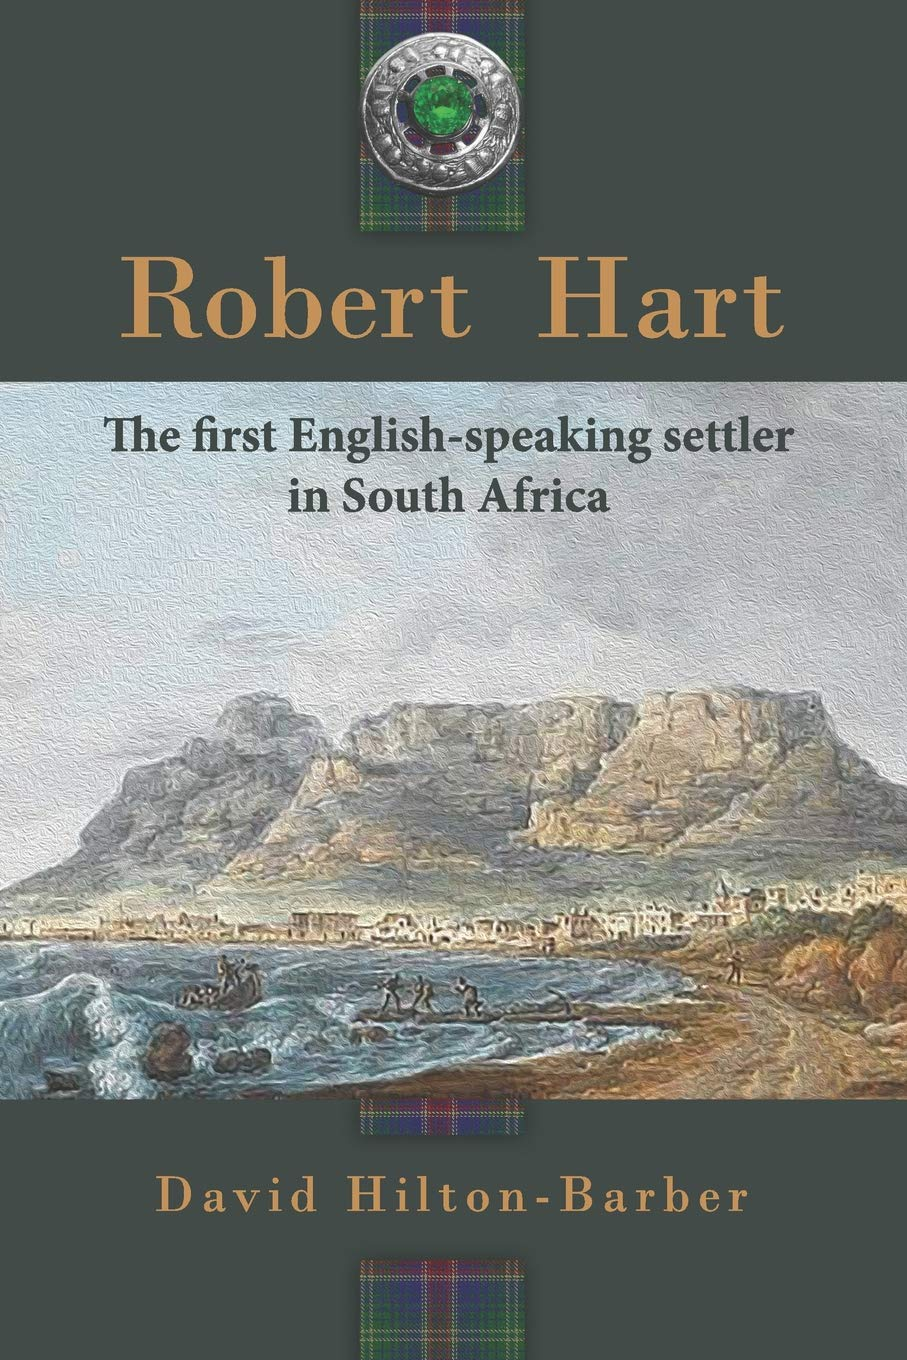 Download Robert Hart: The first English-speaking settler in South Africa pdf epub